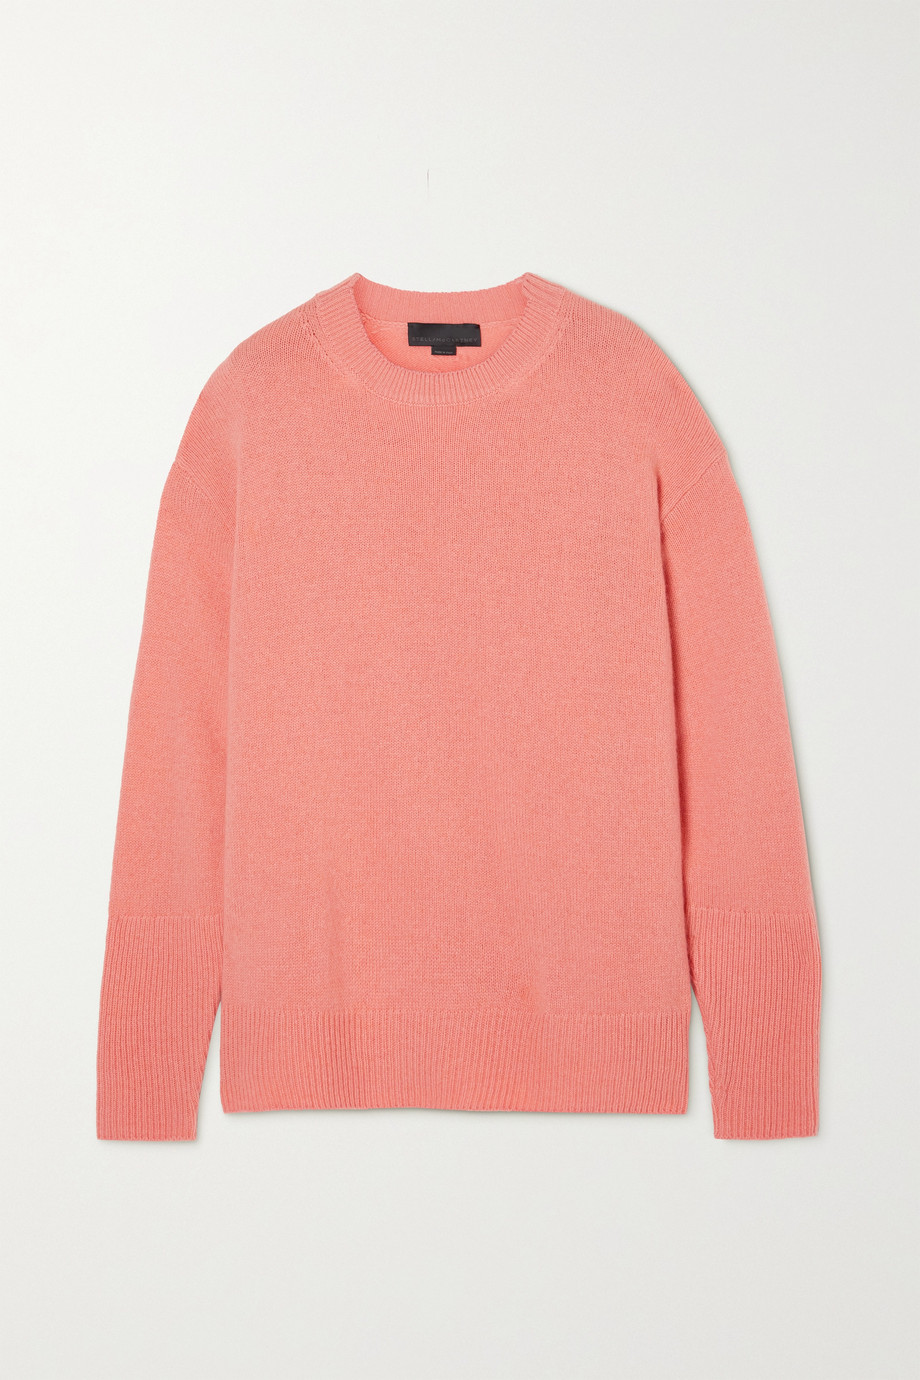 Stella McCartney Cashmere and wool-blend sweater